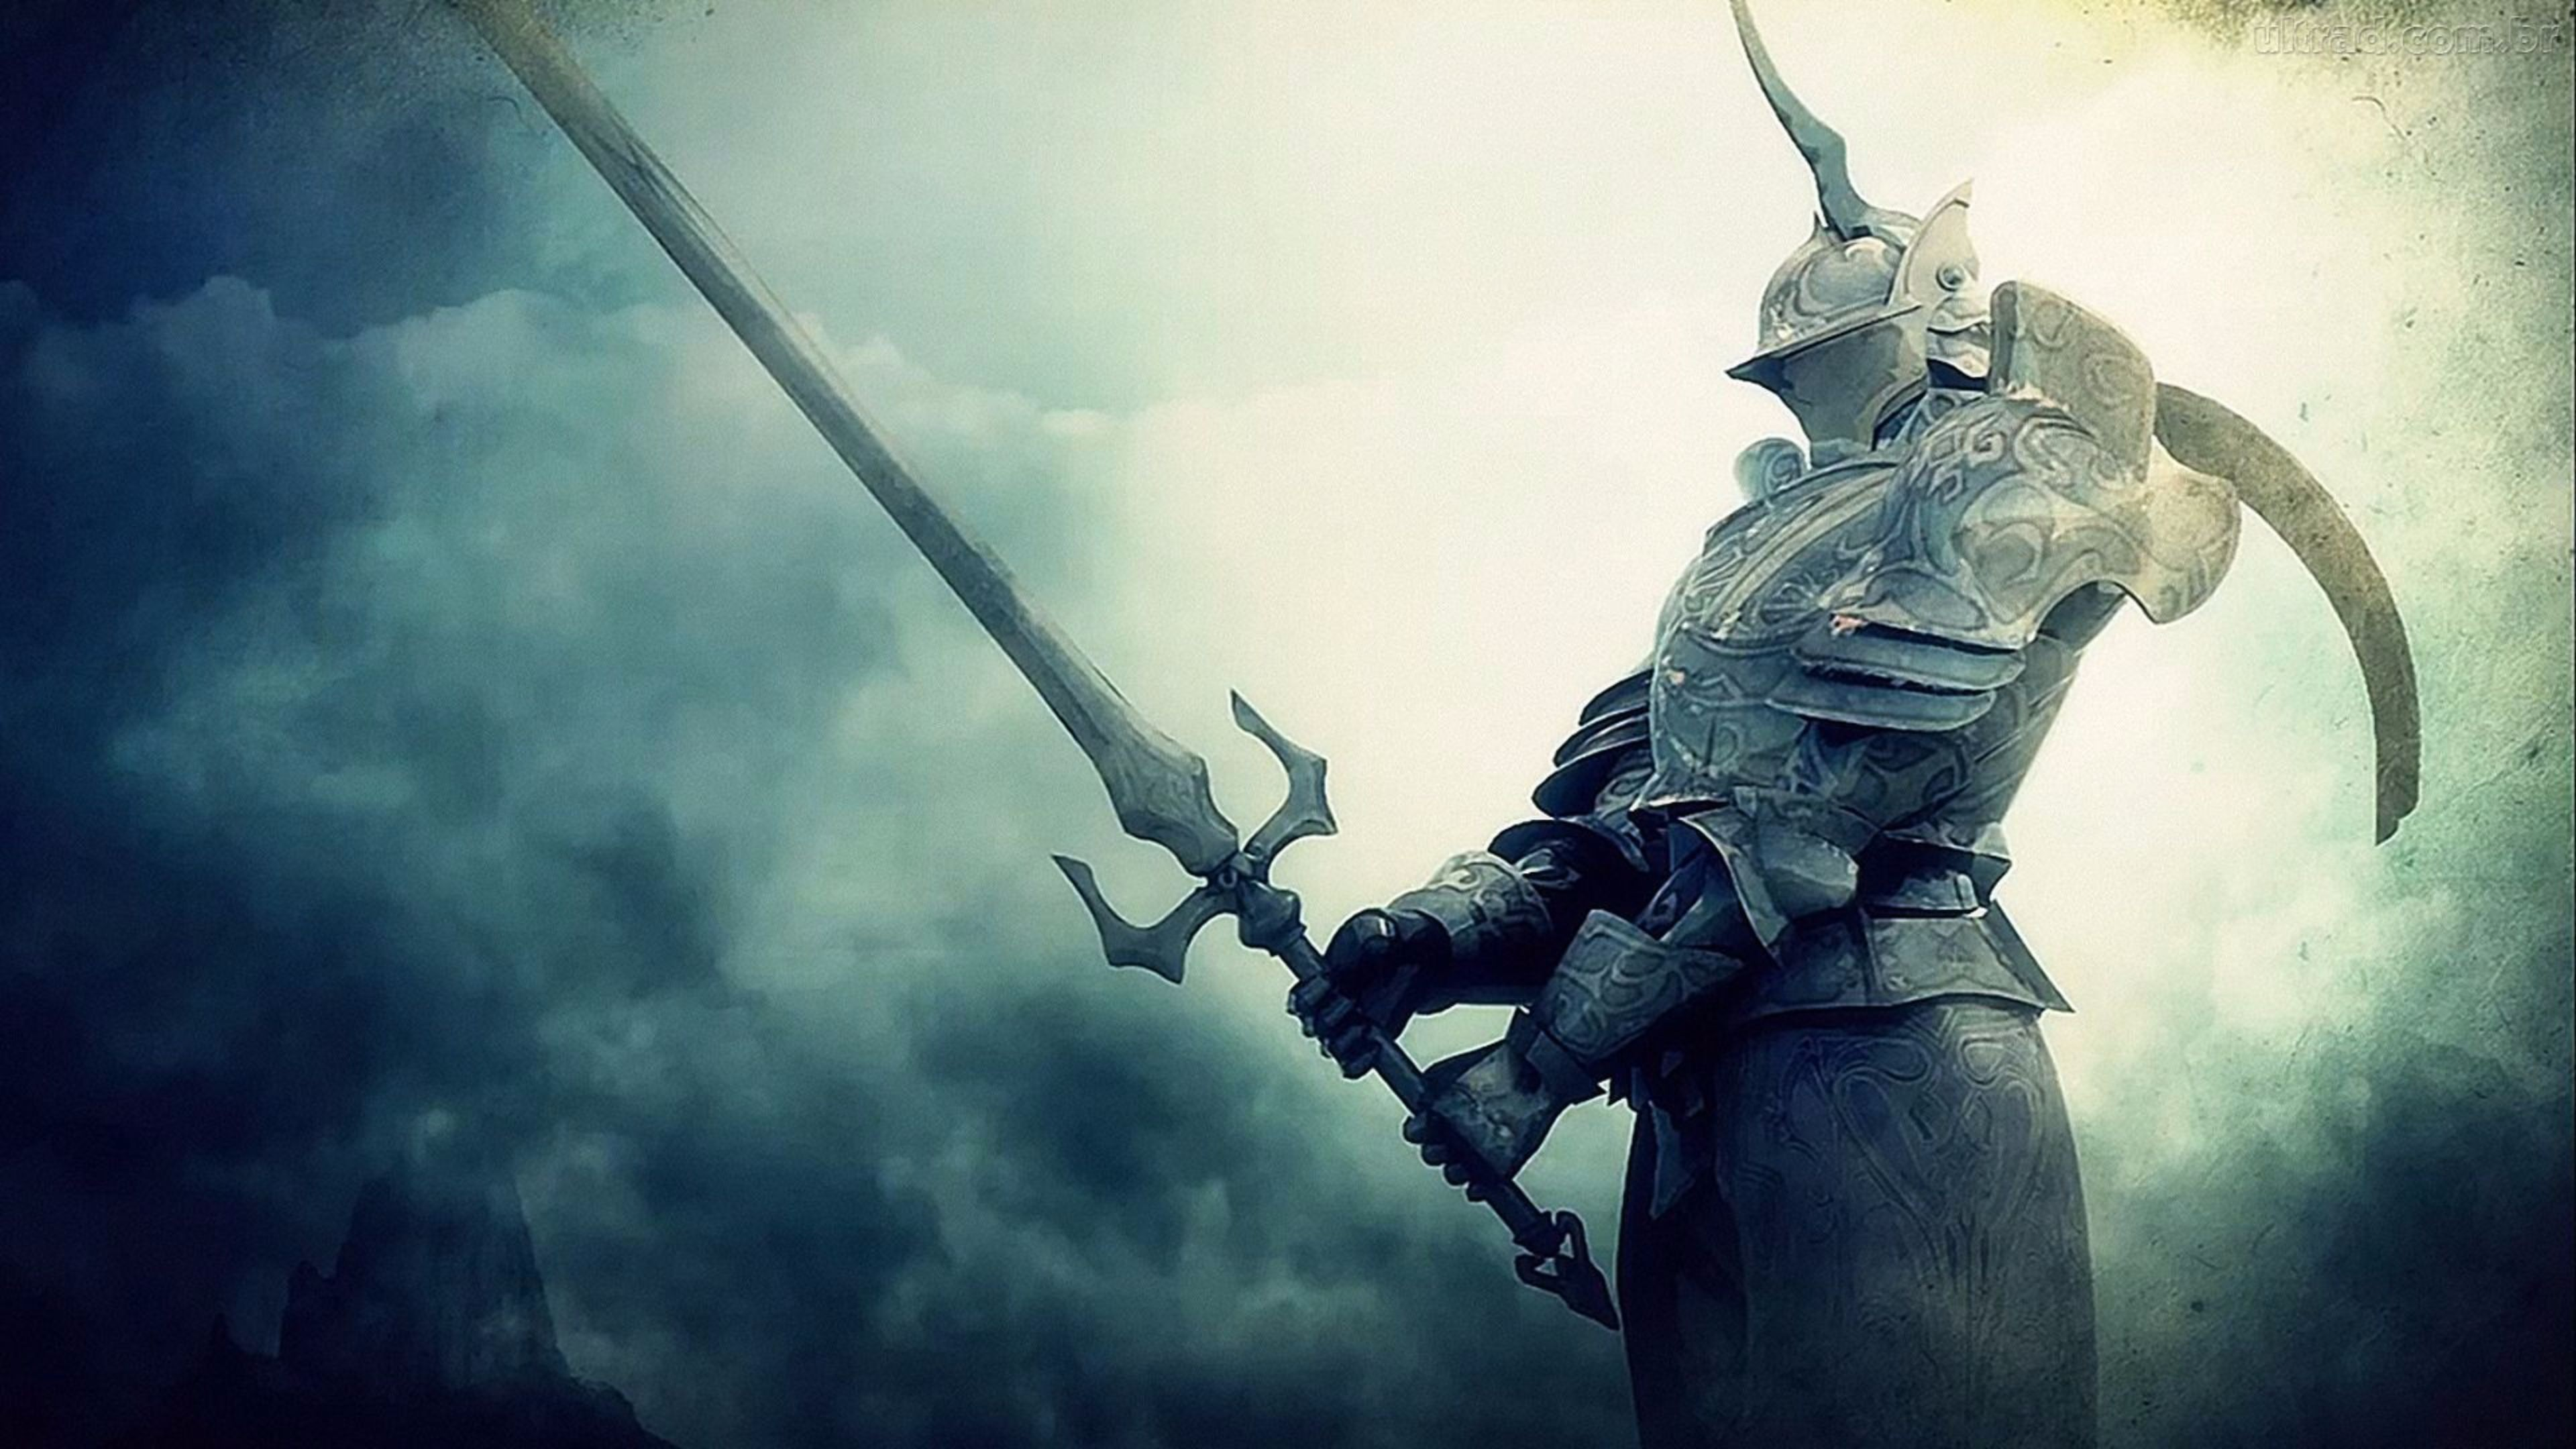 dark souls wallpaper breaking - photo #30